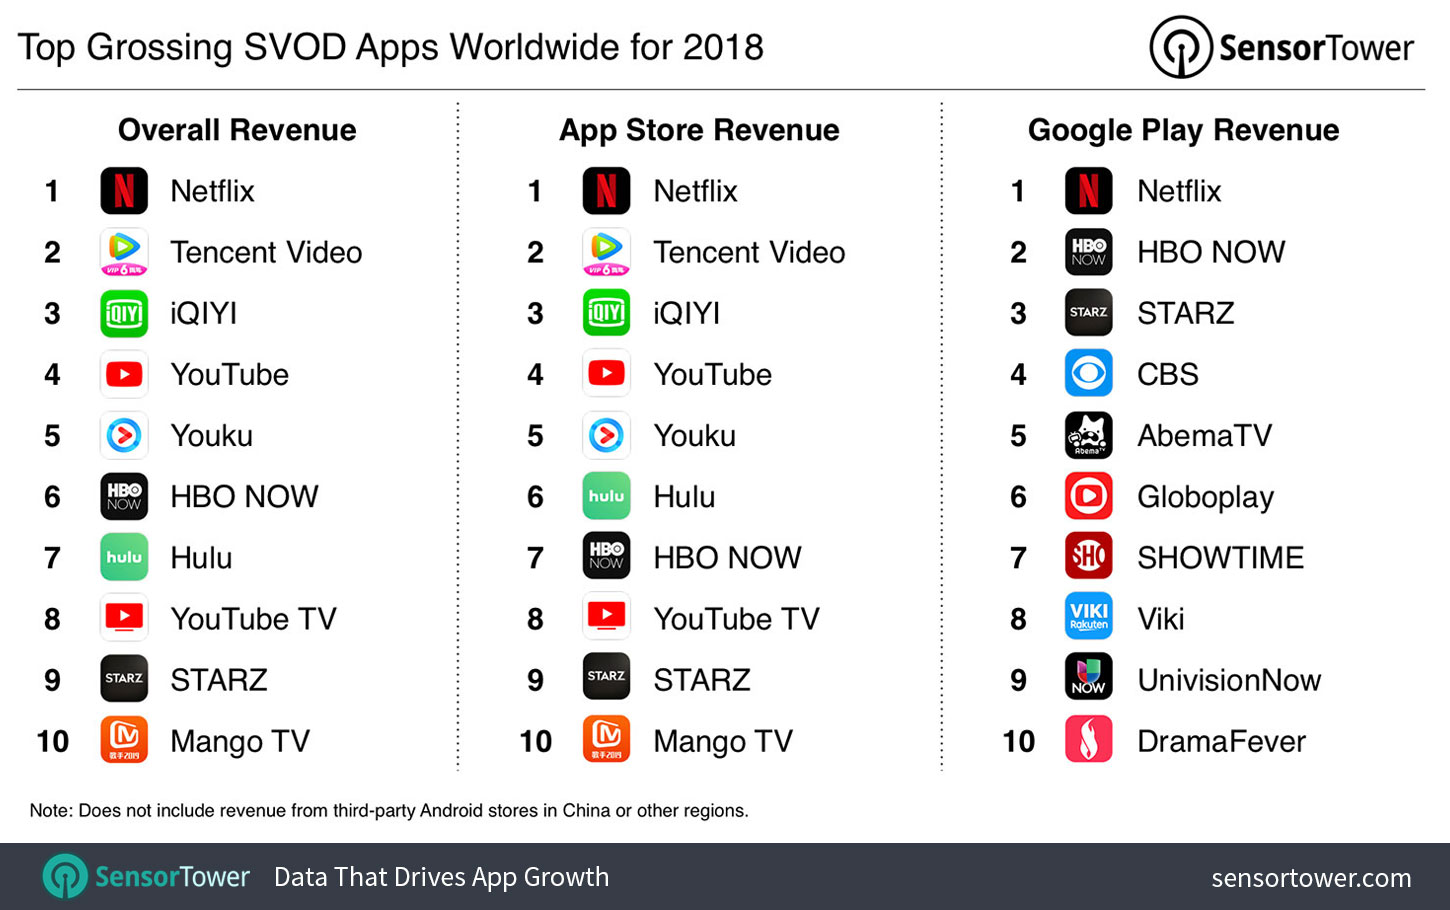 Top SVOD Apps by Revenue for 2018